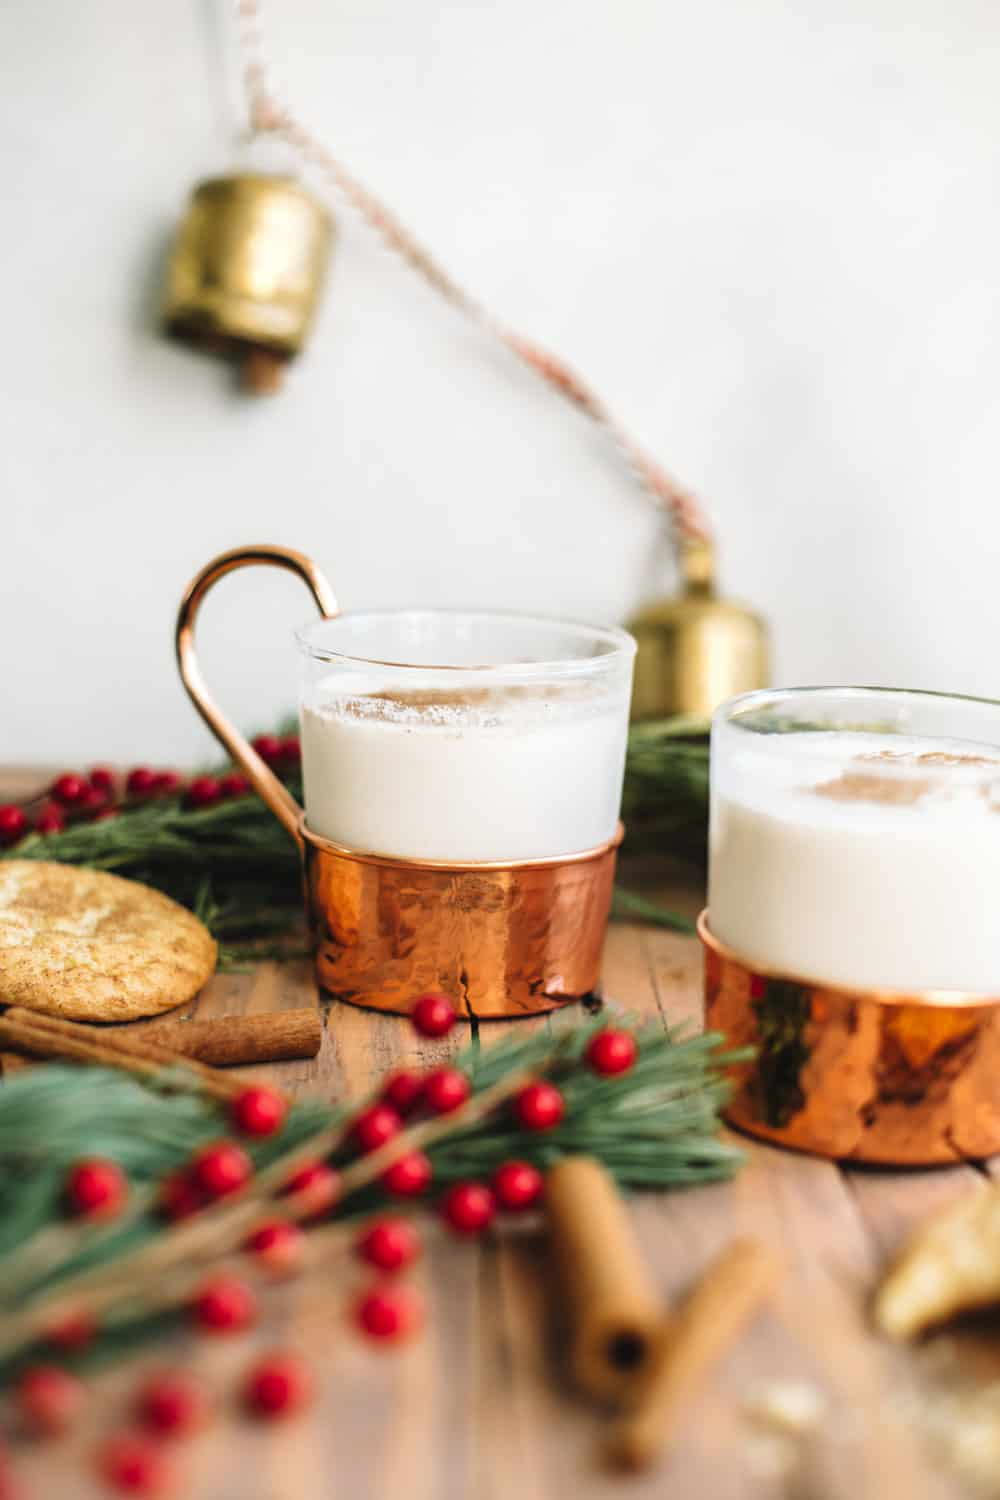 Santa Claus Nightcap: A Cookie Milk Whiskey Cocktail 8 Snickerdoodle Cookies 4 Cups of milk (I used 2%) 2 Ounces of whiskey or bourbon 1/4 Teaspoon of cinnamon Pinch of nutmeg In a large bowl lightly crush the snickerdoodle cookies. Pour in the milk and stir together. Cover milk and cookie mixture and refrigerate for 2-4 hours to infuse the flavor. Remove the milk and straight out the soaked cookies. For one cocktail: Fill a shaker with 8 ounces of cookie infused milk, 2 ounces of whiskey, cinnamon and nutmeg. Fill with ice and shake for 20-30 seconds. Pour into a mug and sprinkle with cinnamon.